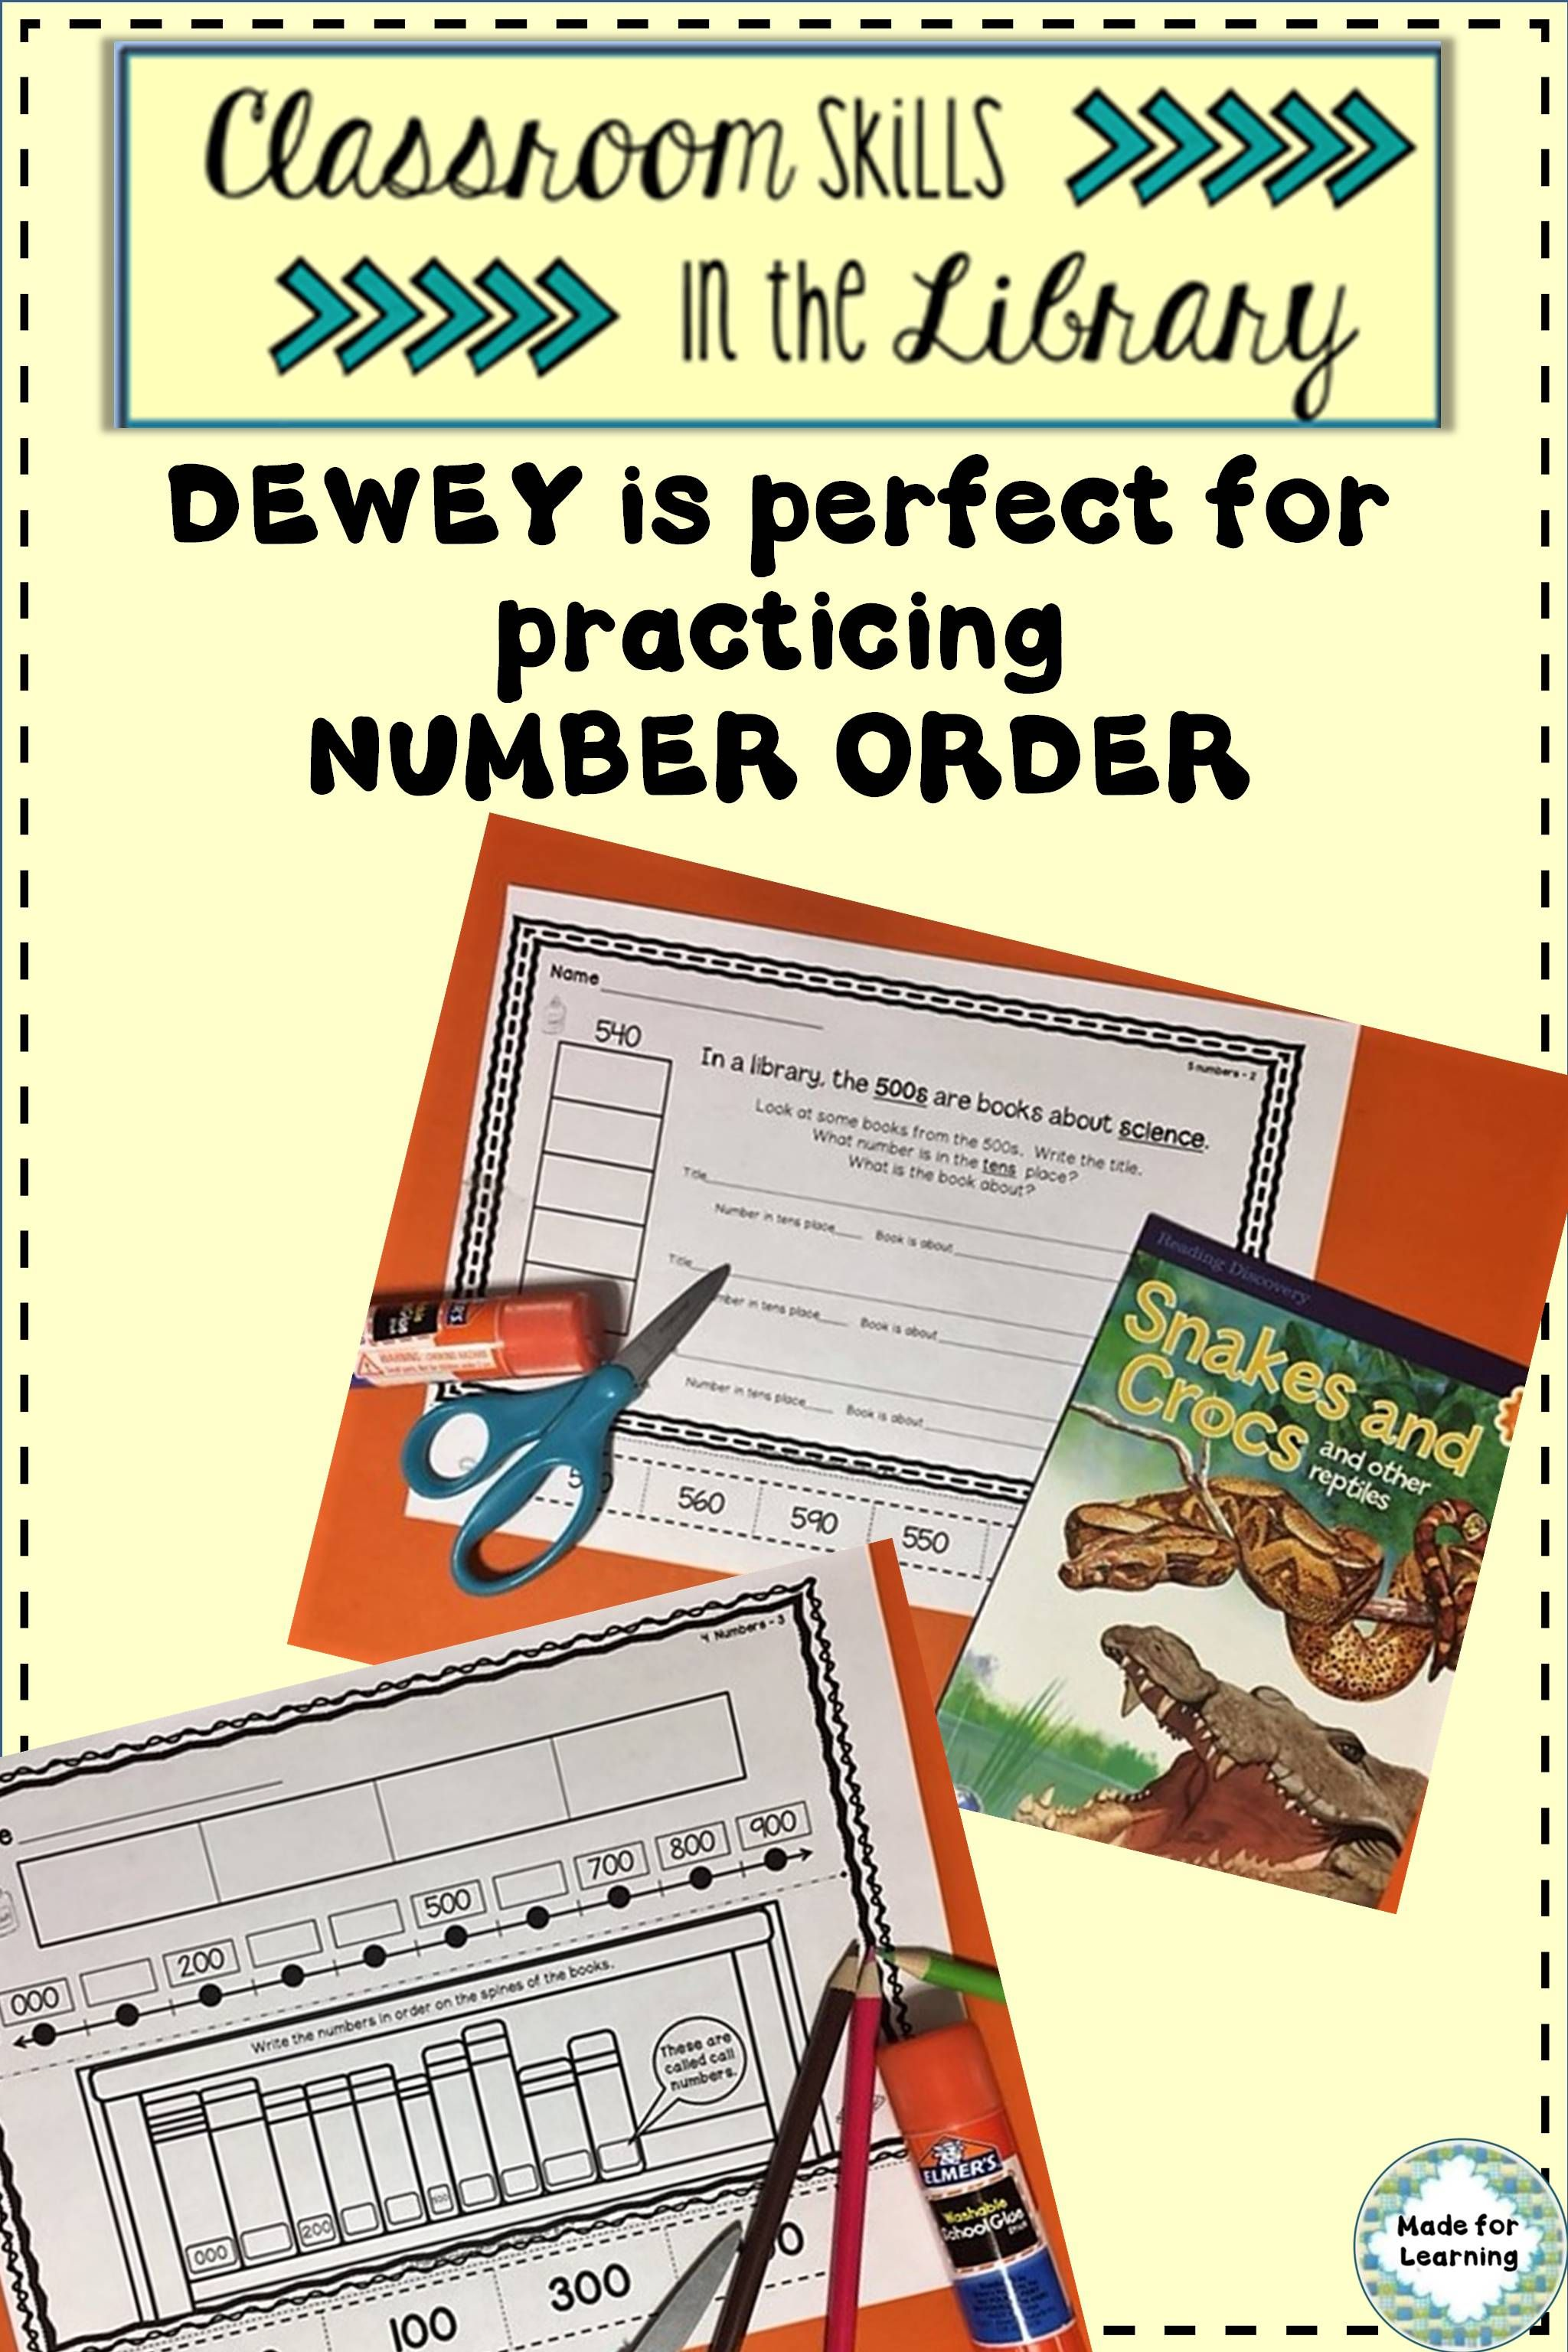 Worksheets Library Skills Worksheets library and classroom skills dewey number order printable support in the is a perfect way to practice learn about at same time